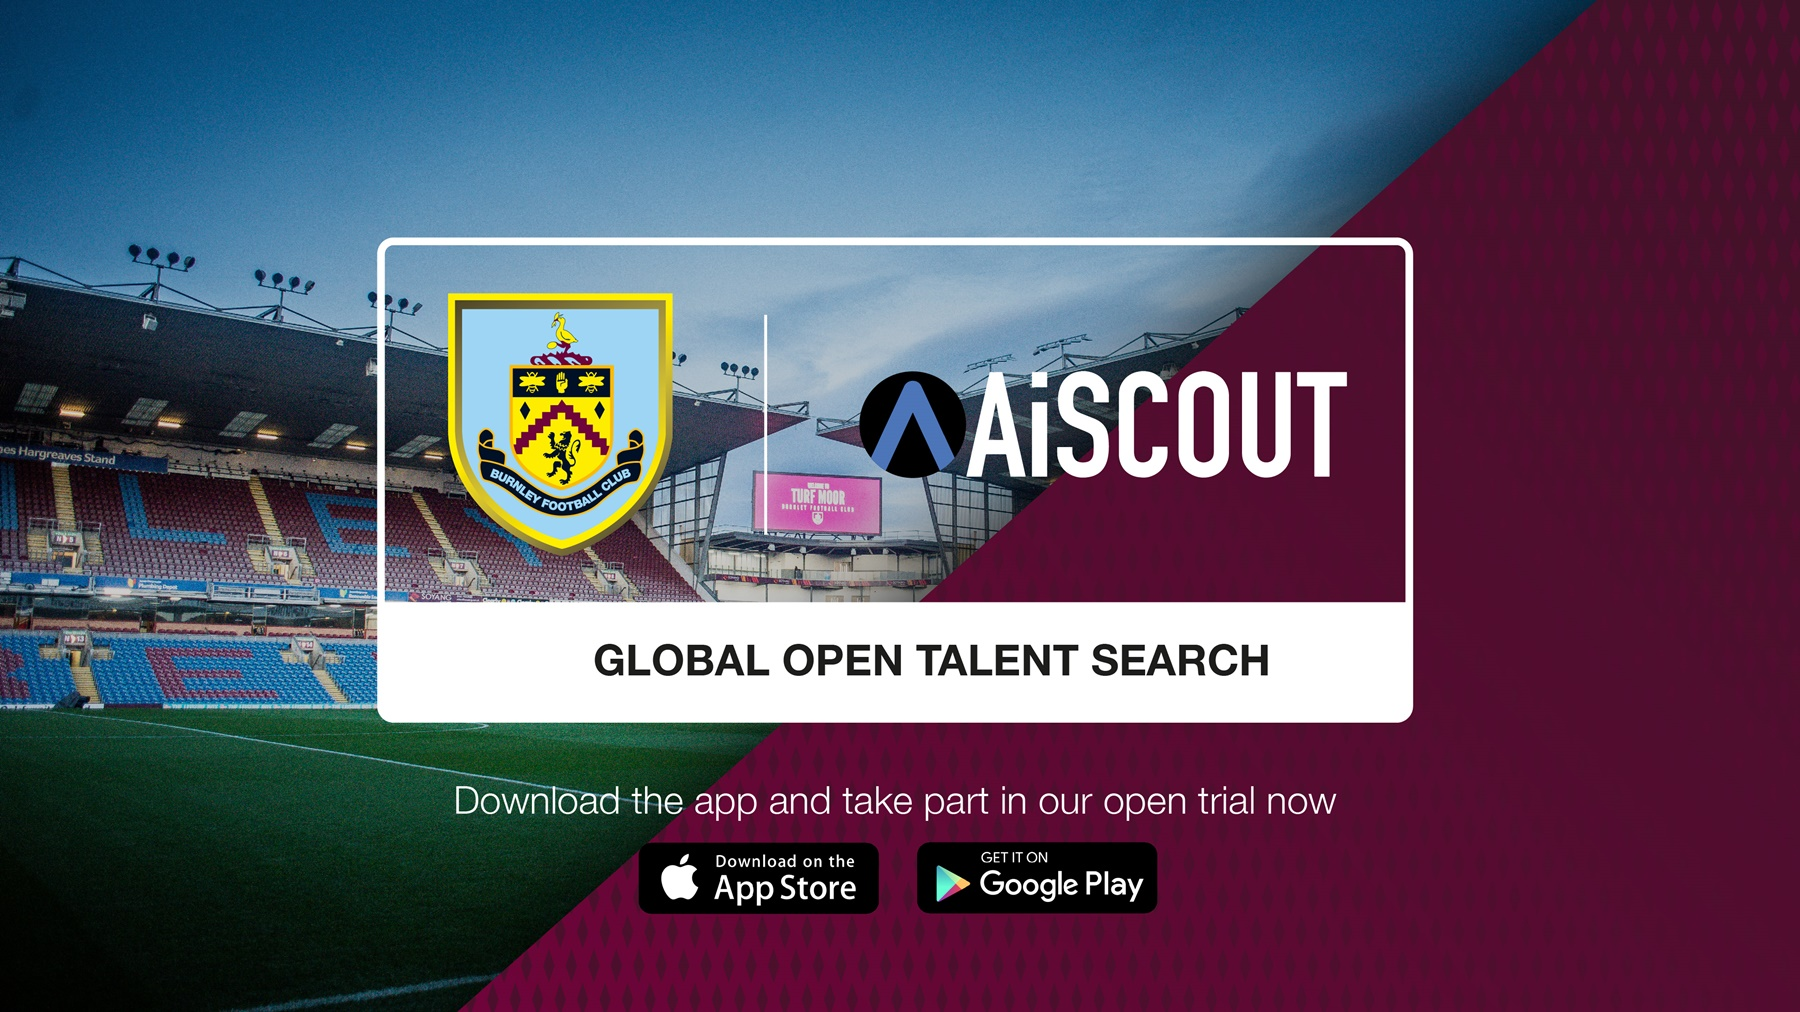 Club Welcomes AiSCOUT Trialists